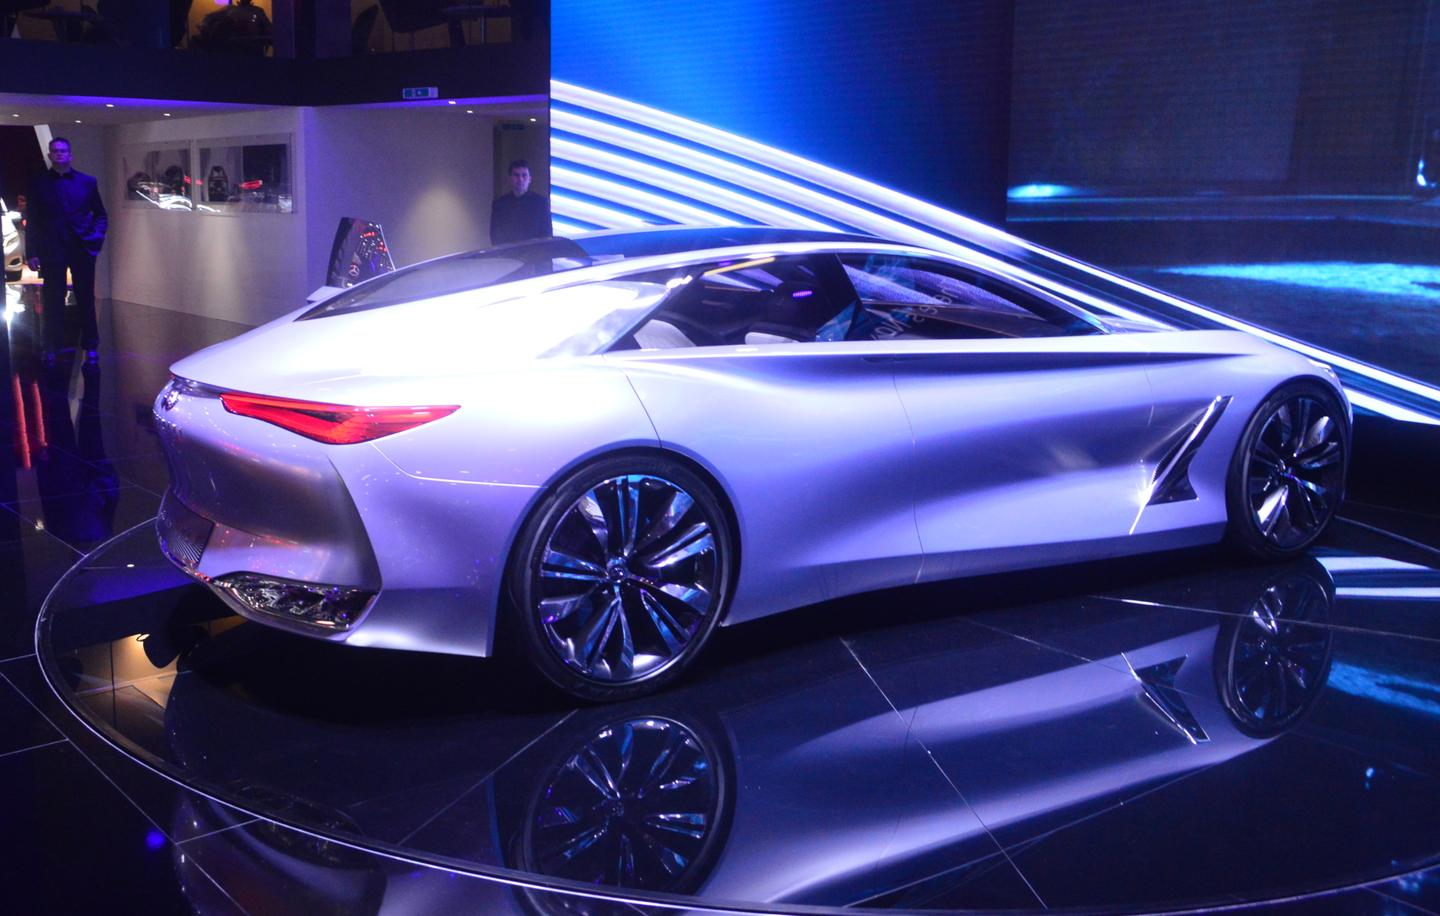 The Infiniti Q80 Inspiration makes its debut at the Paris Motor Show (Photo: C.C. Weiss/Gizmag)